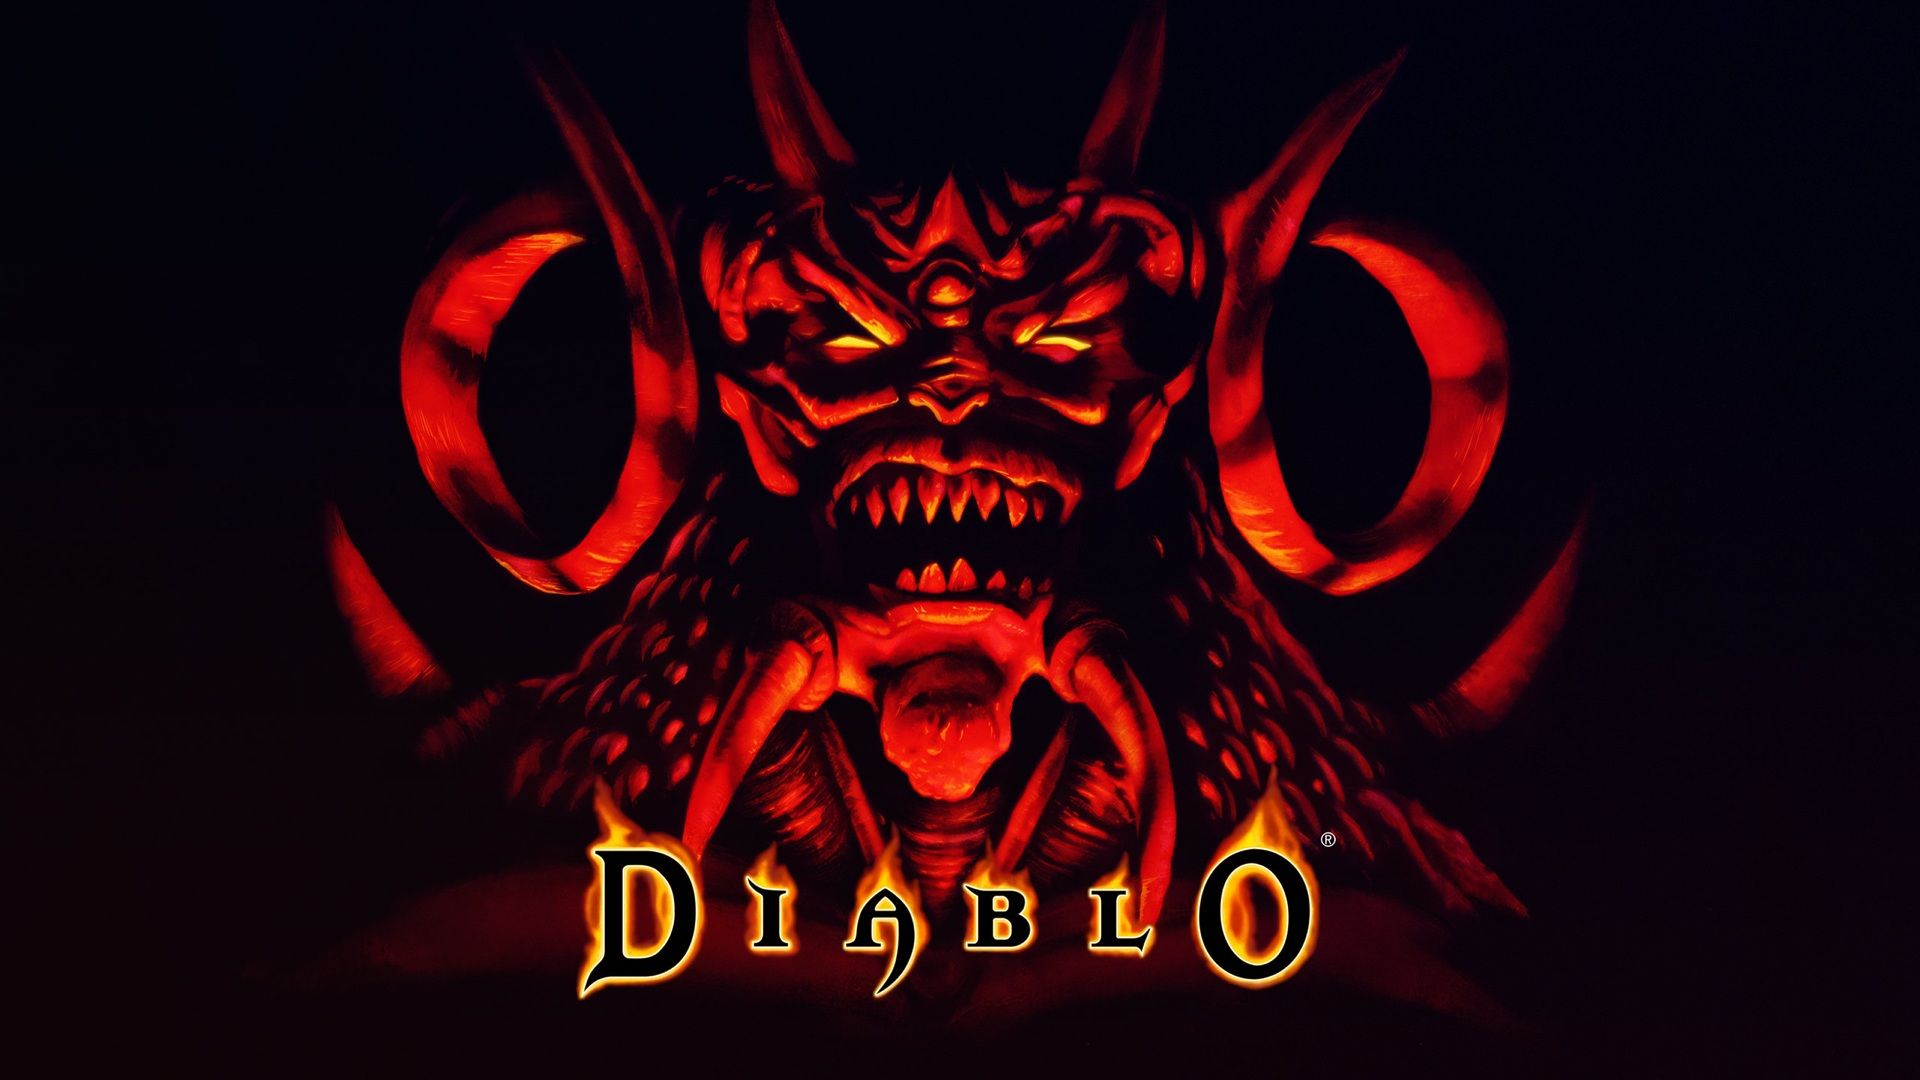 Diablo released on GOG, more Blizzard classics on the way